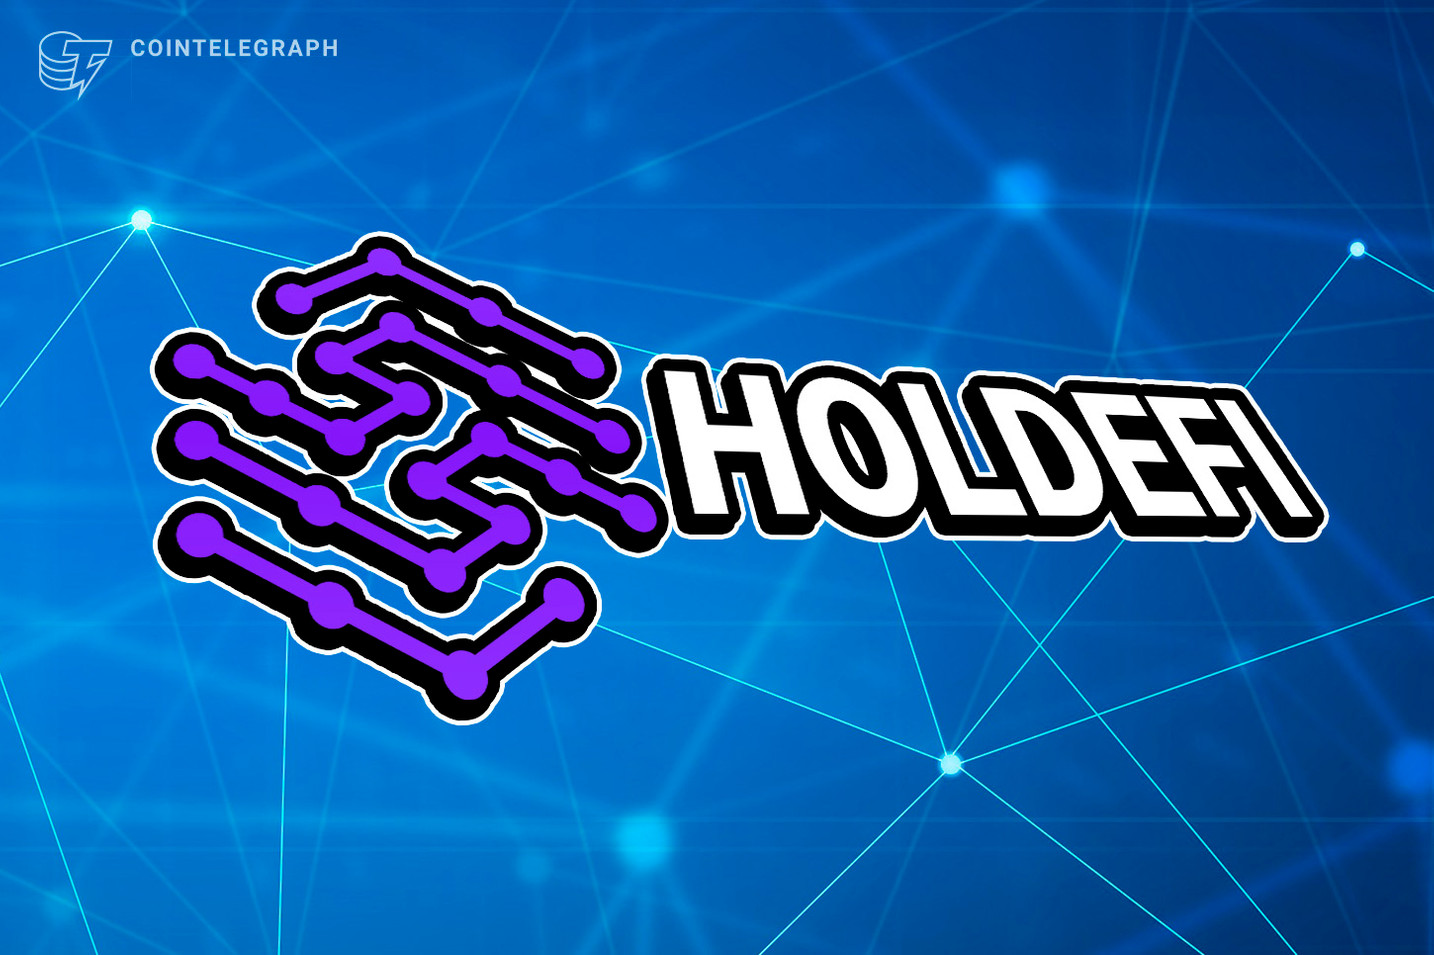 Holdefi sets a new cornerstone in DeFi lending market